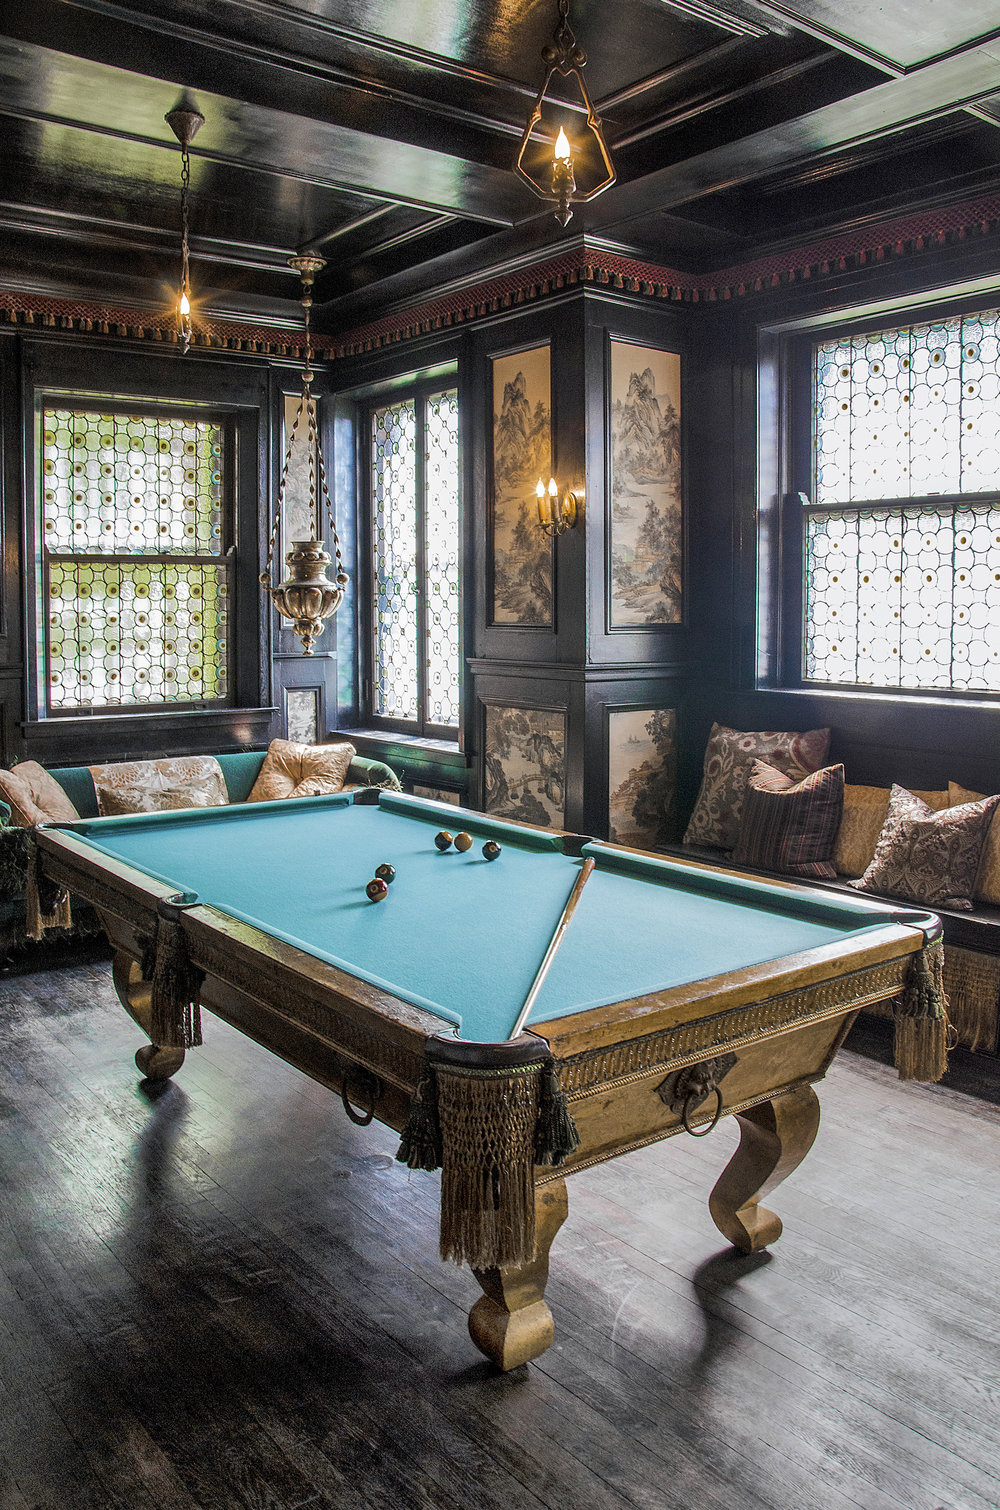 Pool Room photo by Andrew Werner .jpg